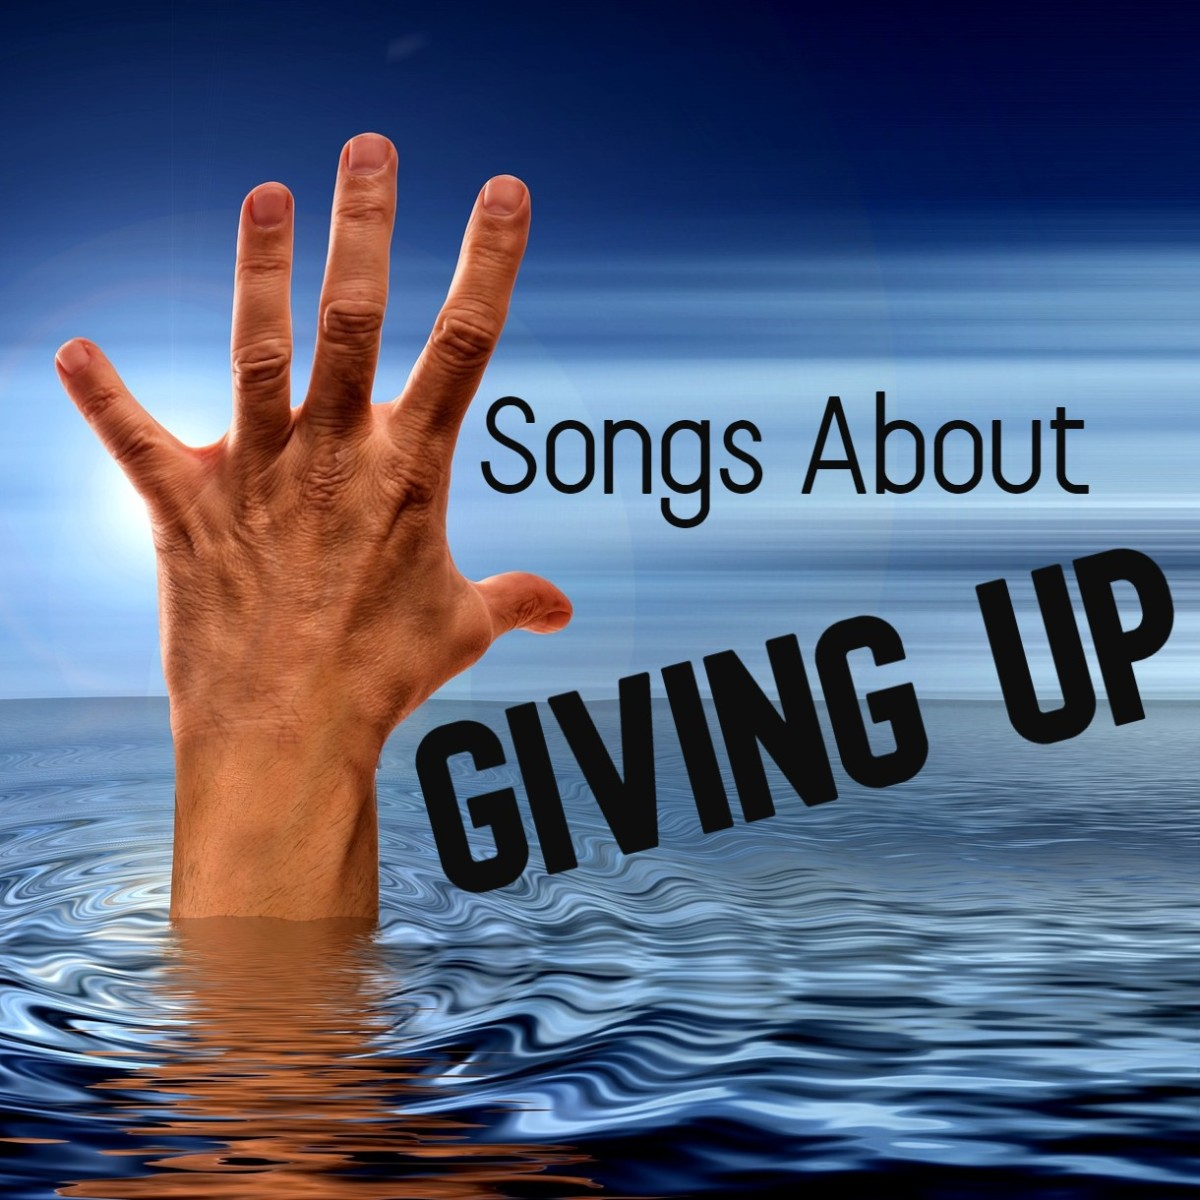 43 Songs About Giving Up